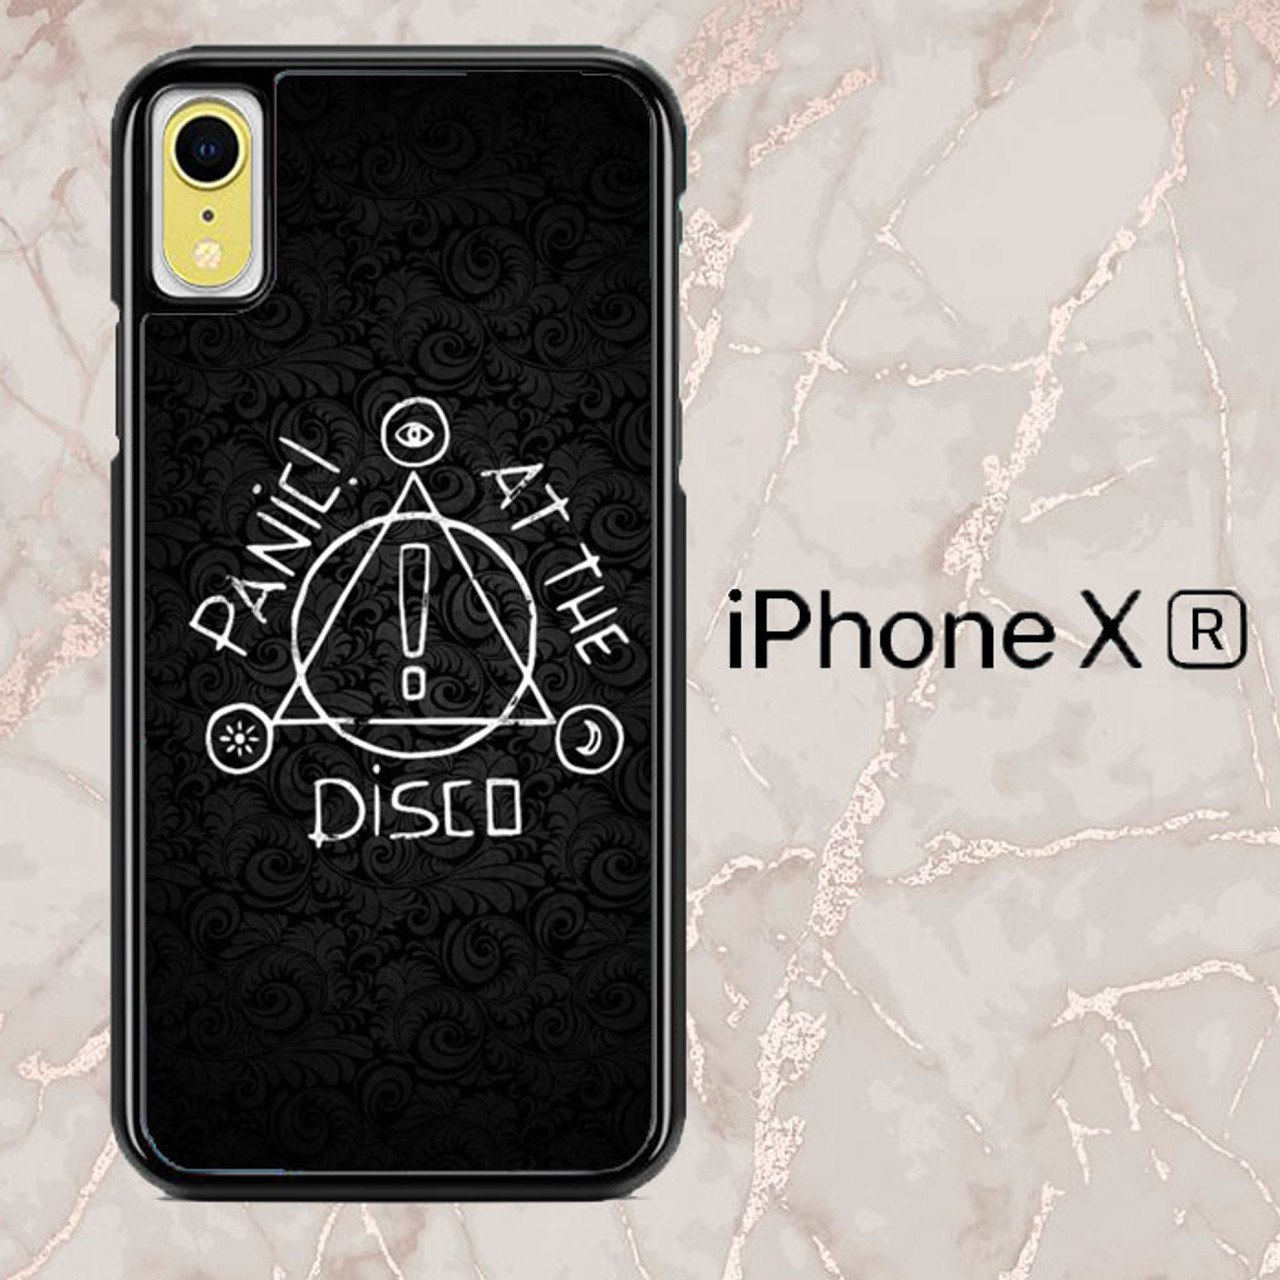 Wallpaper Panic At The Disco Fj0754 Iphone Xr Case Flazzy Store